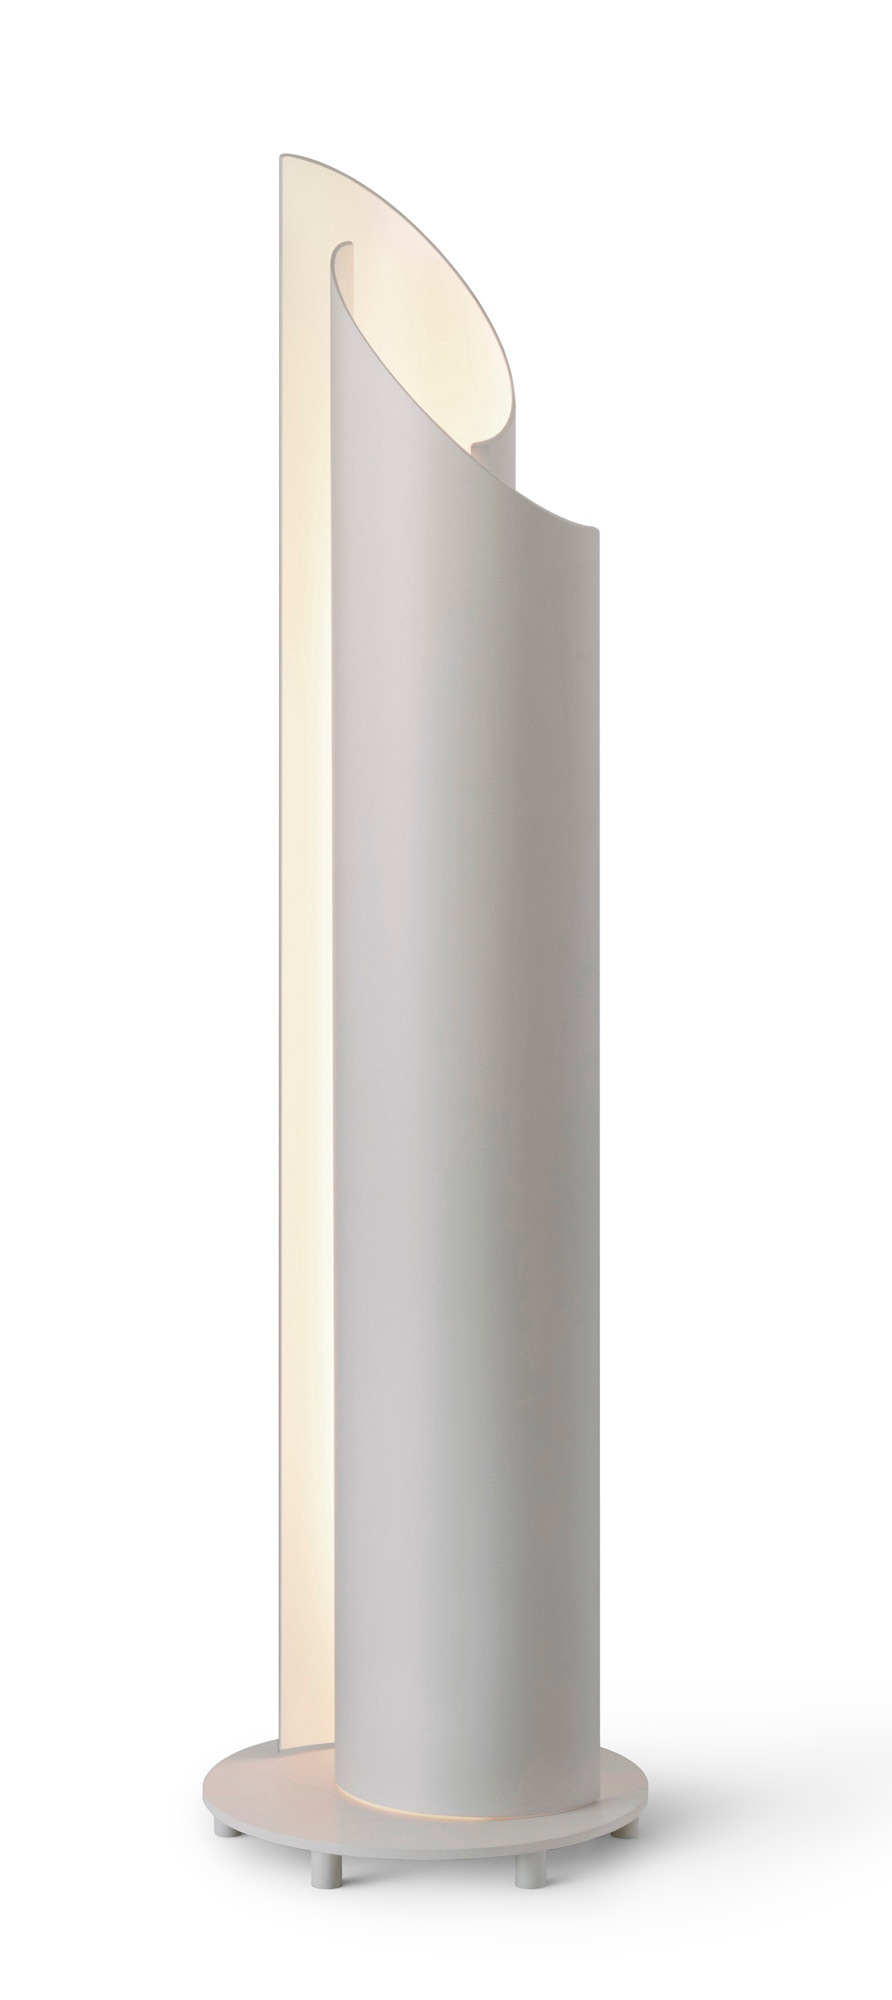 pablo vella table lamp gr shop canada